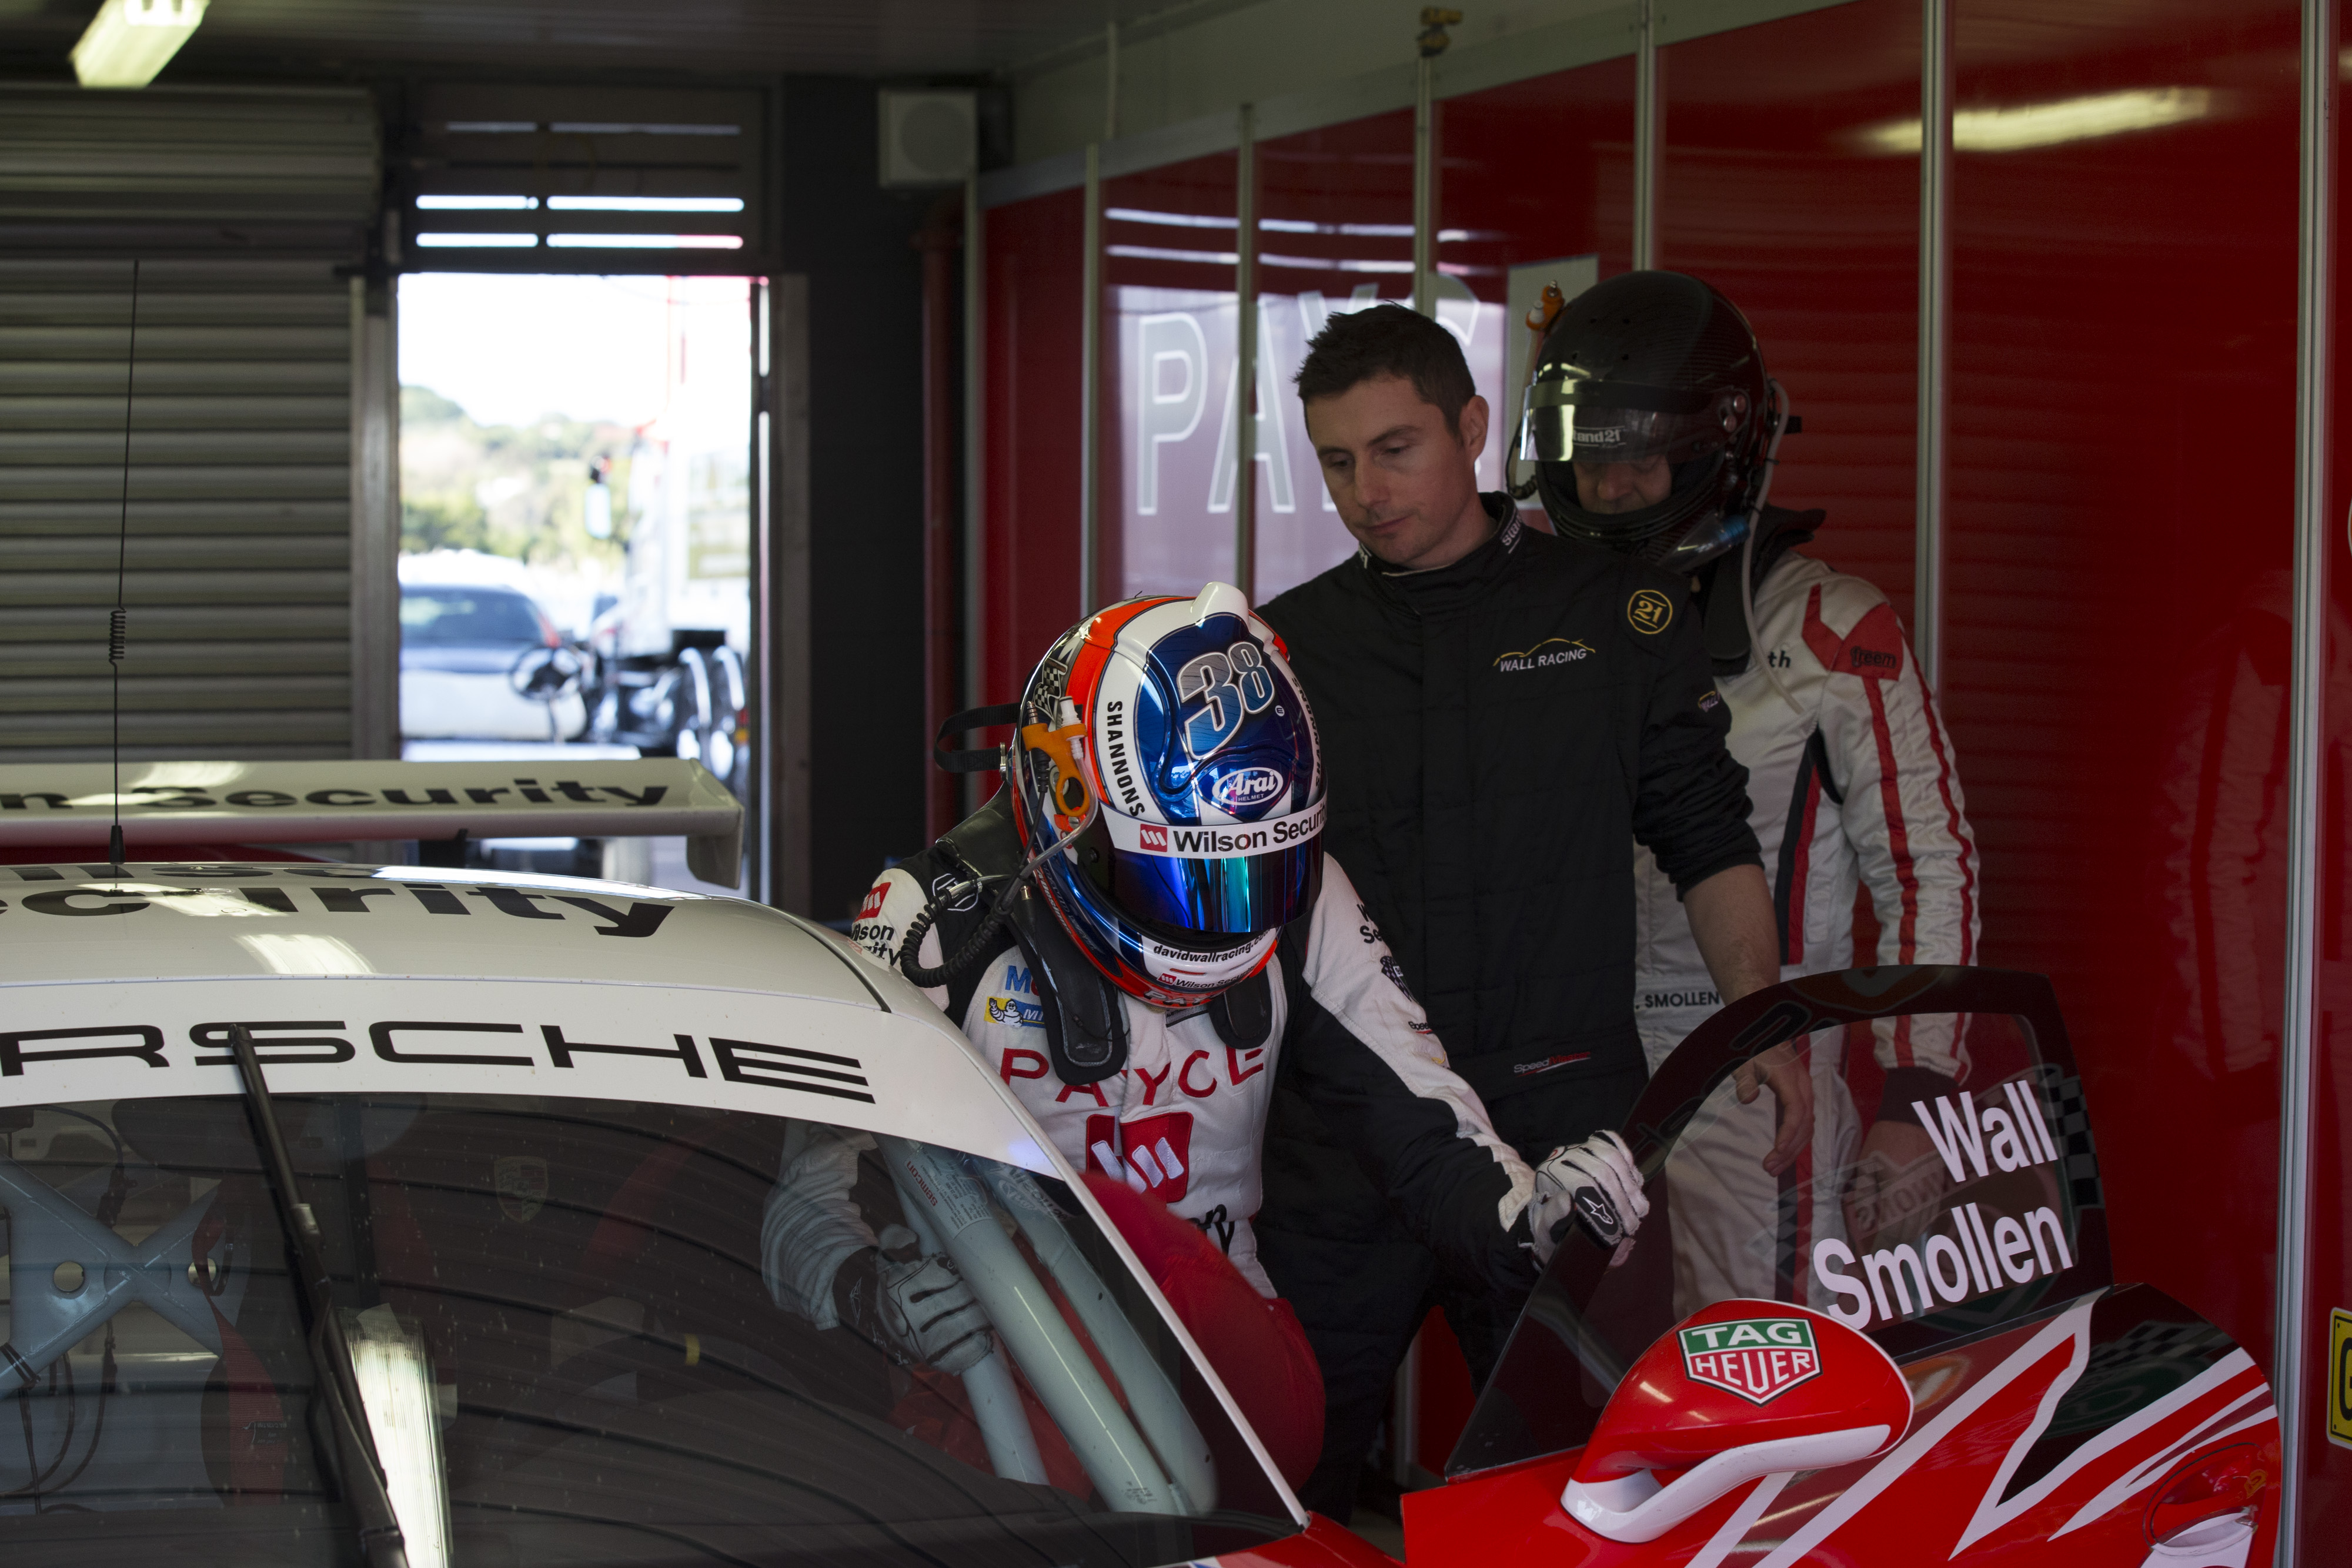 p38-Wall-CarreraCup-R3-2017-1339